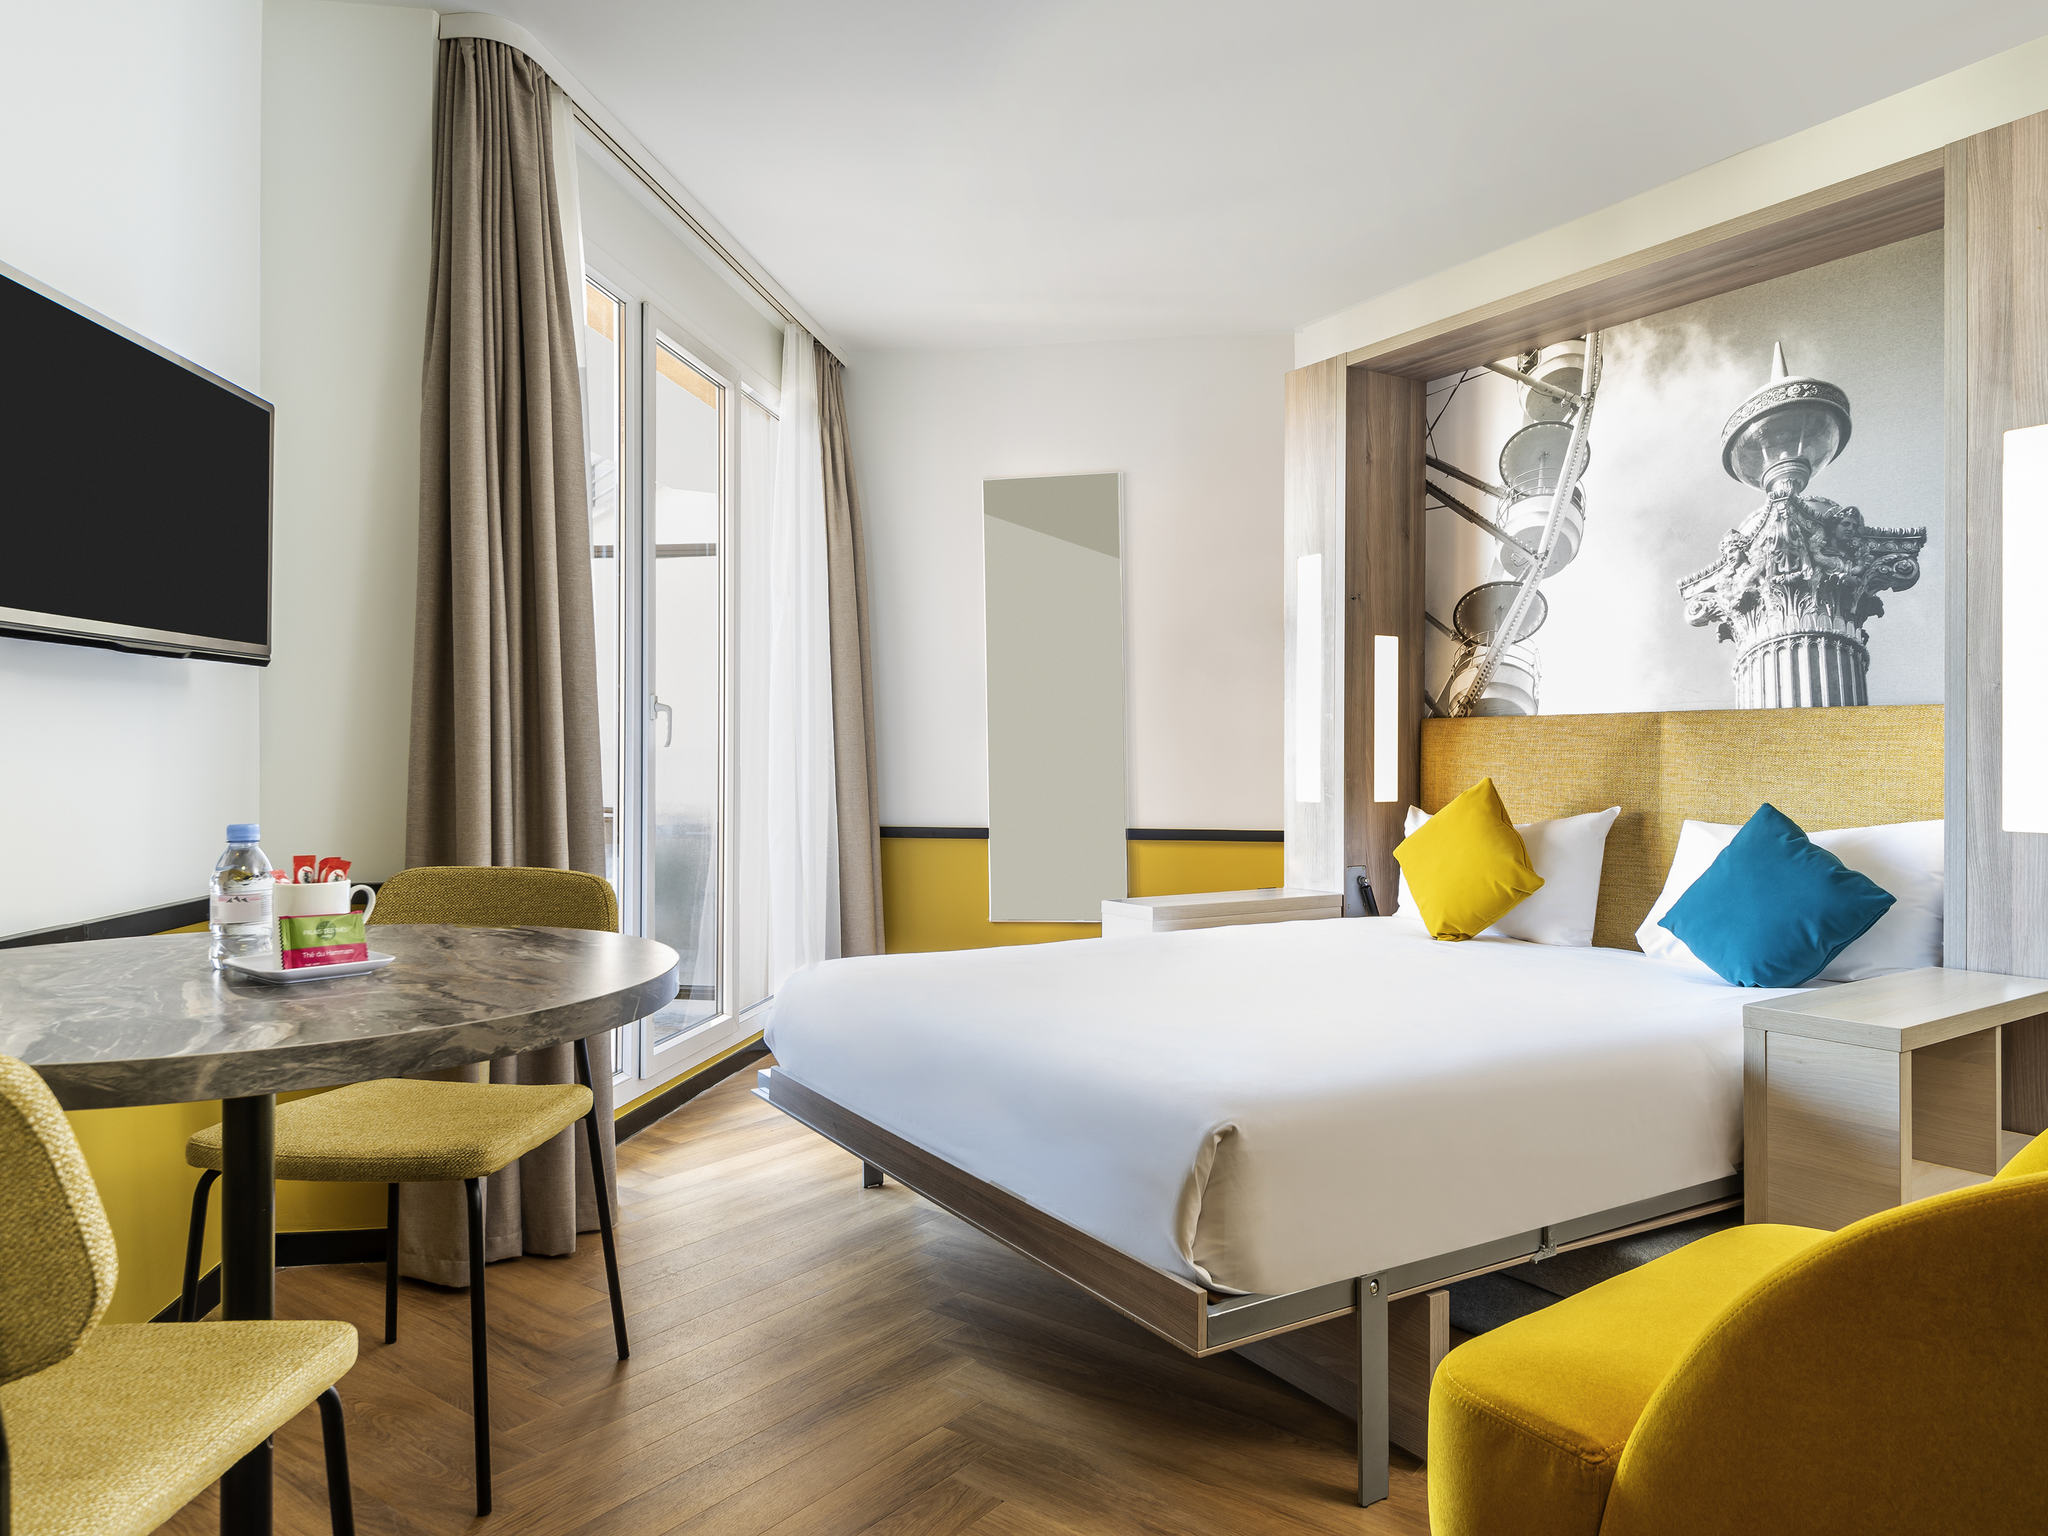 فندق - Aparthotel Adagio Paris Montrouge